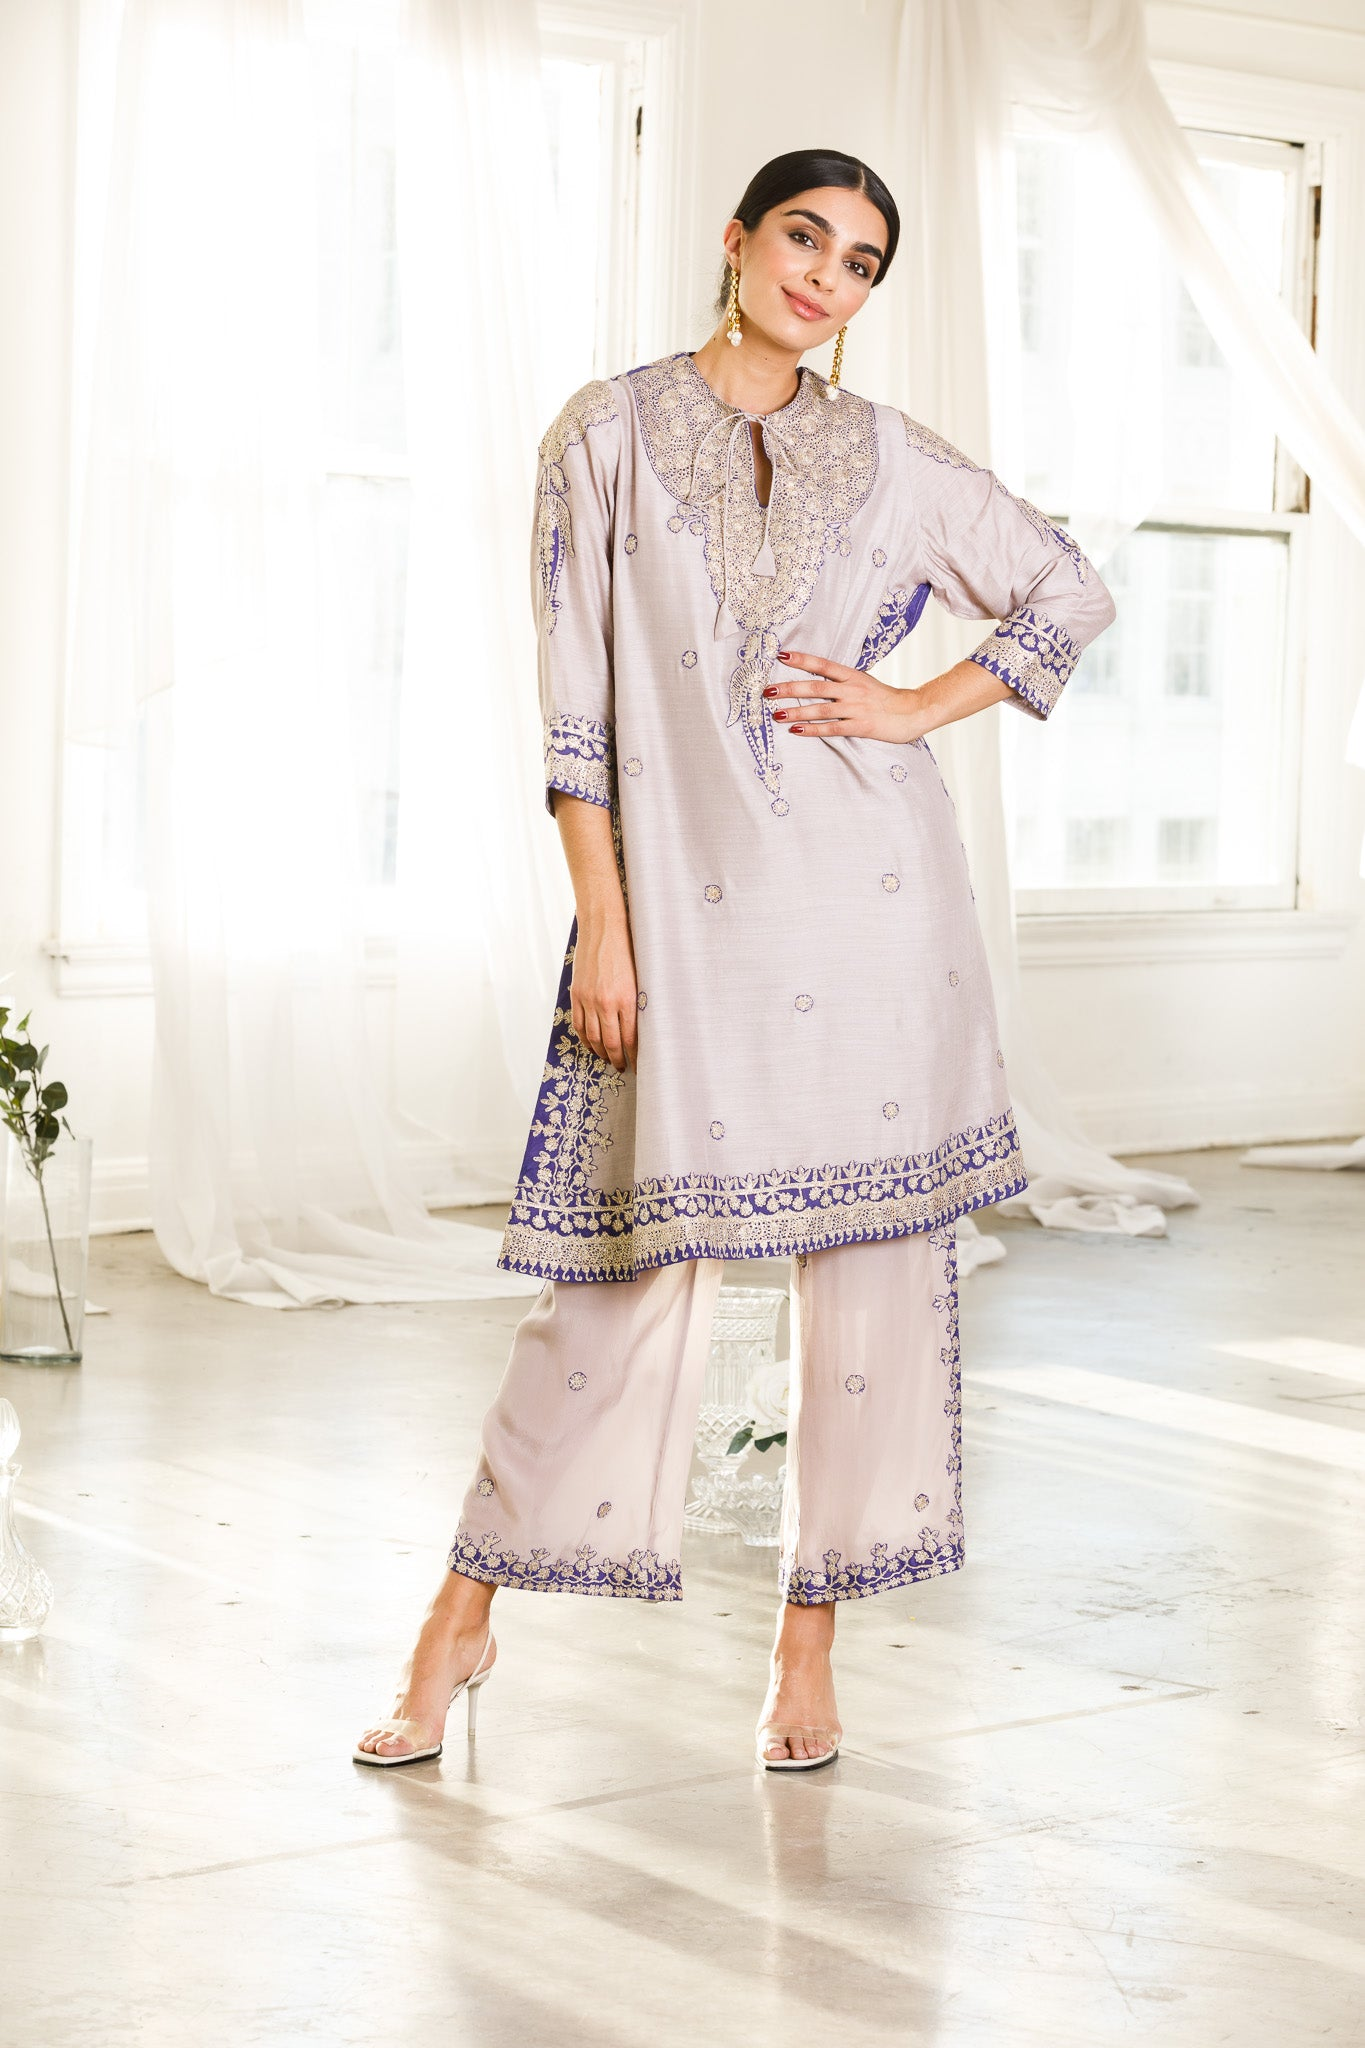 Gray Knee-Length Kurta and Straight Pants Outfit